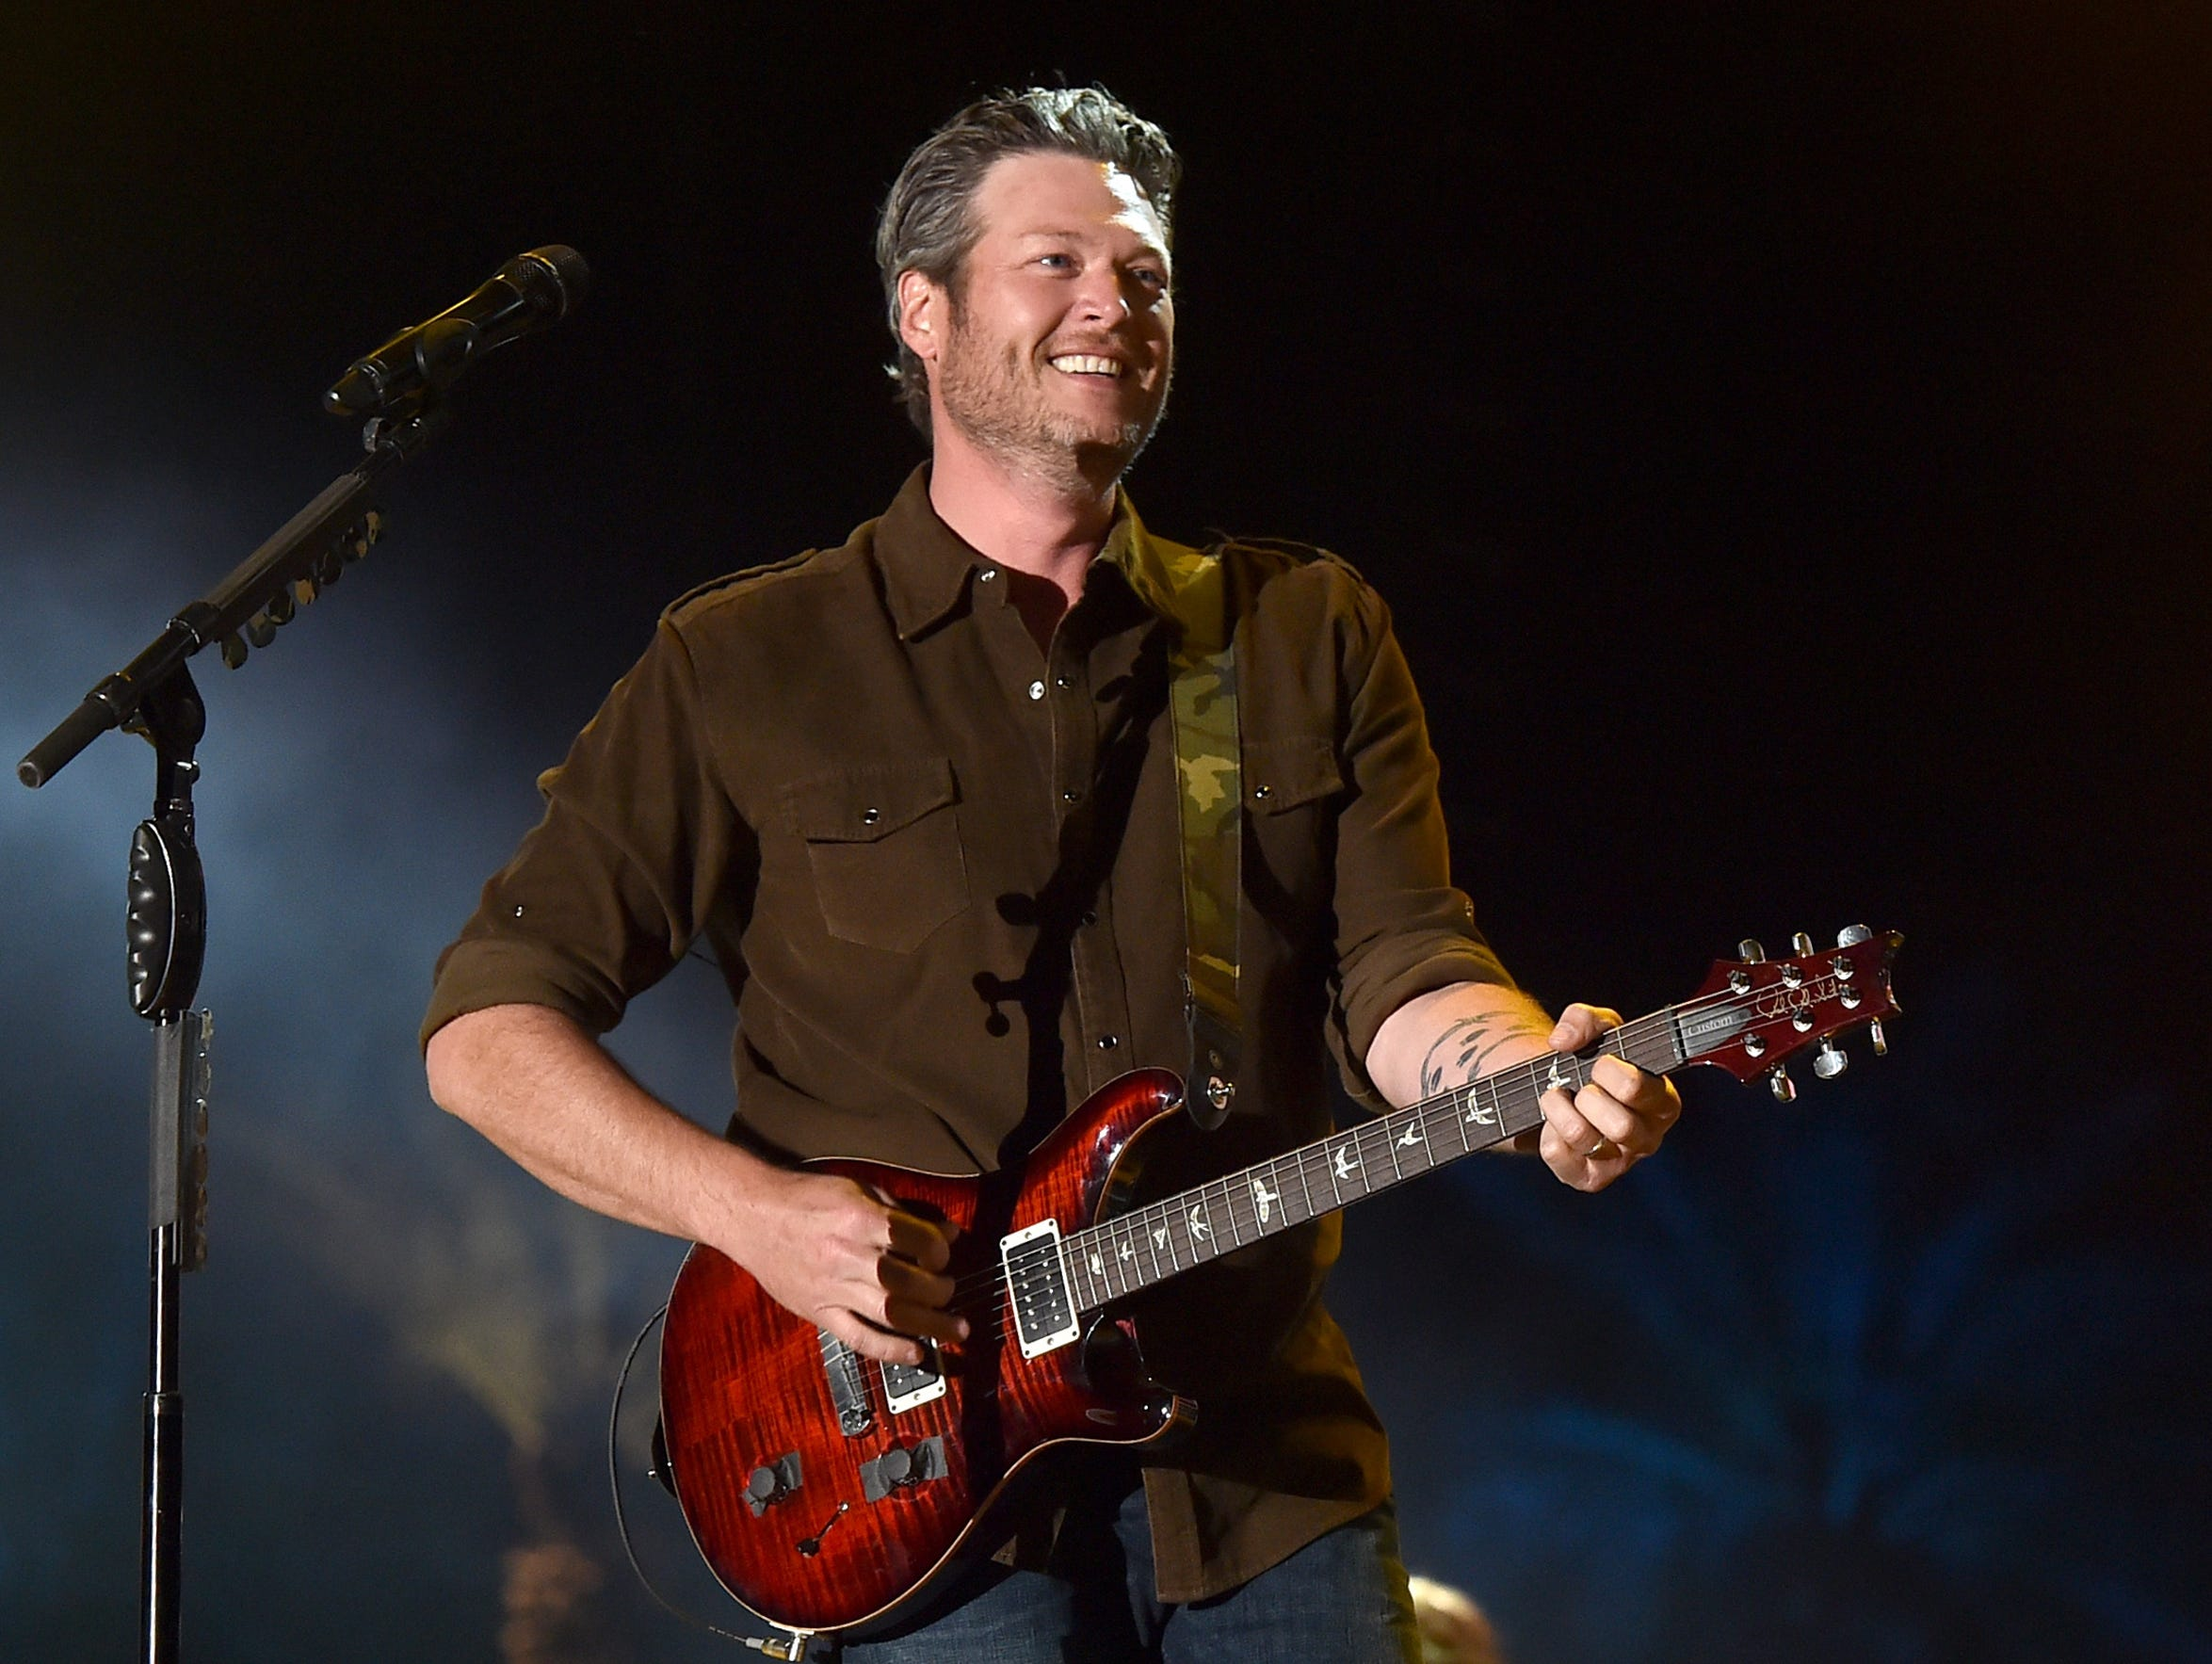 Blake Shelton is among the big names headed to Country